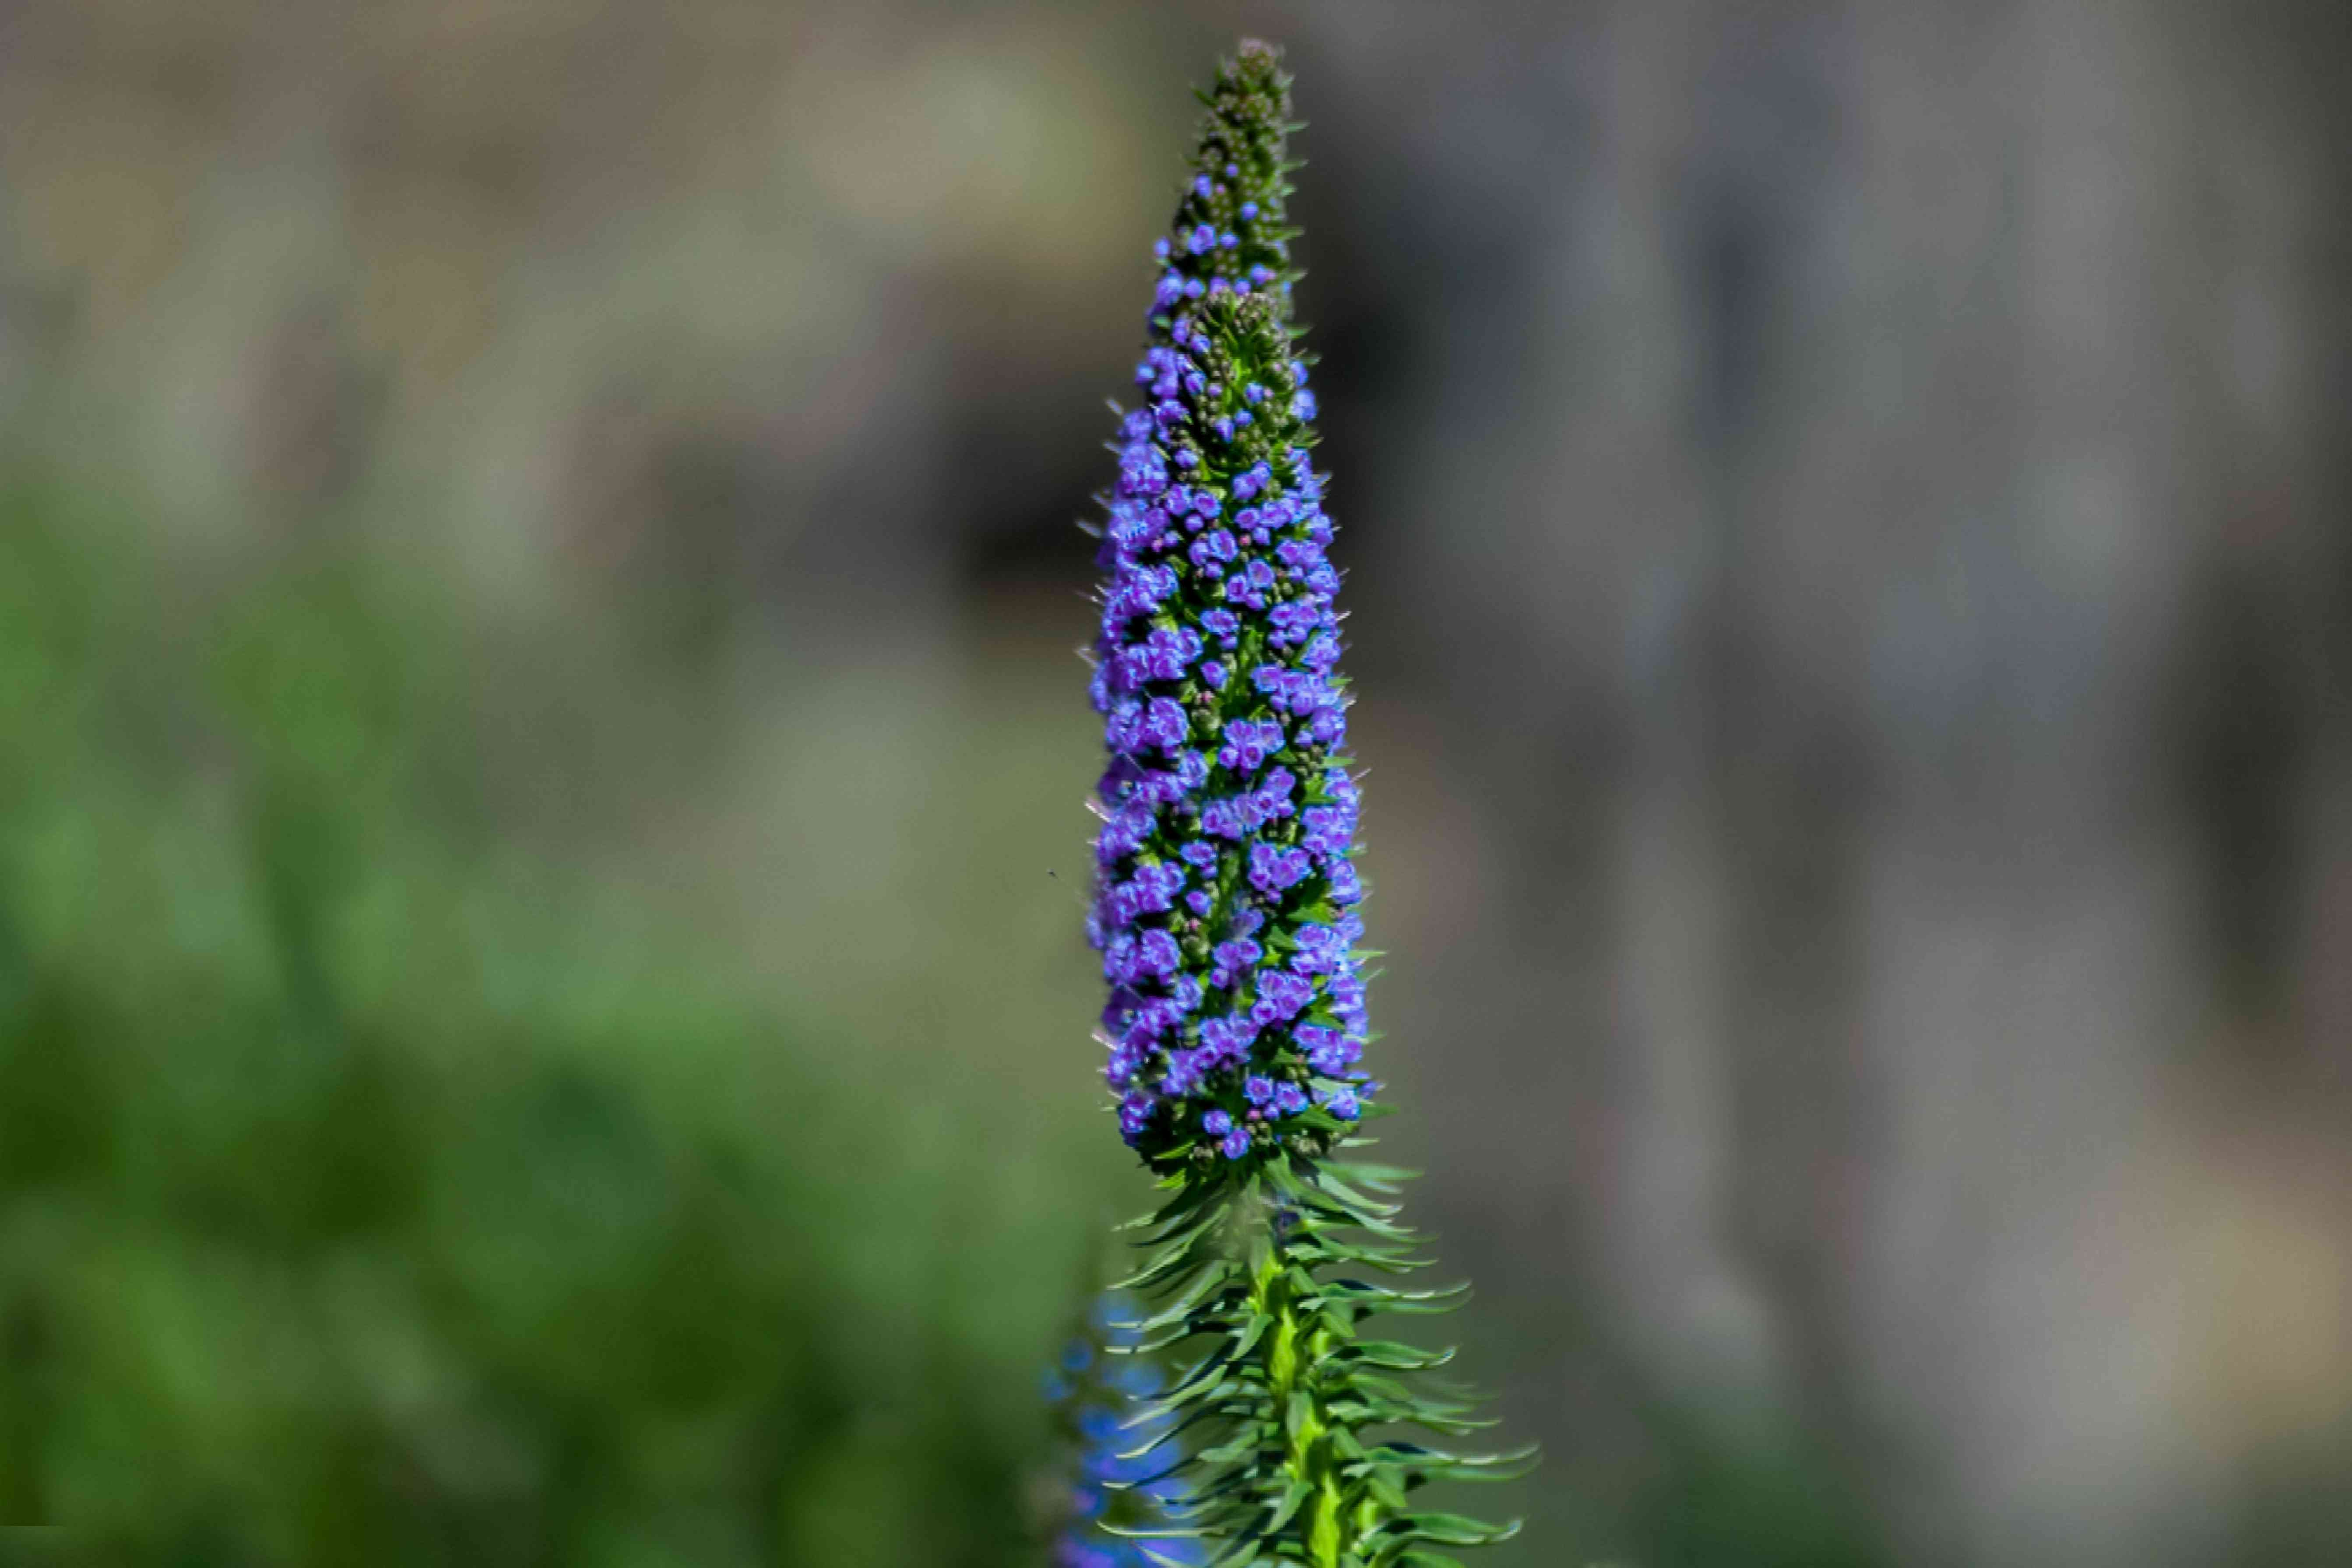 Pride of Madeira with purple cone-shaped flower panicle closeup